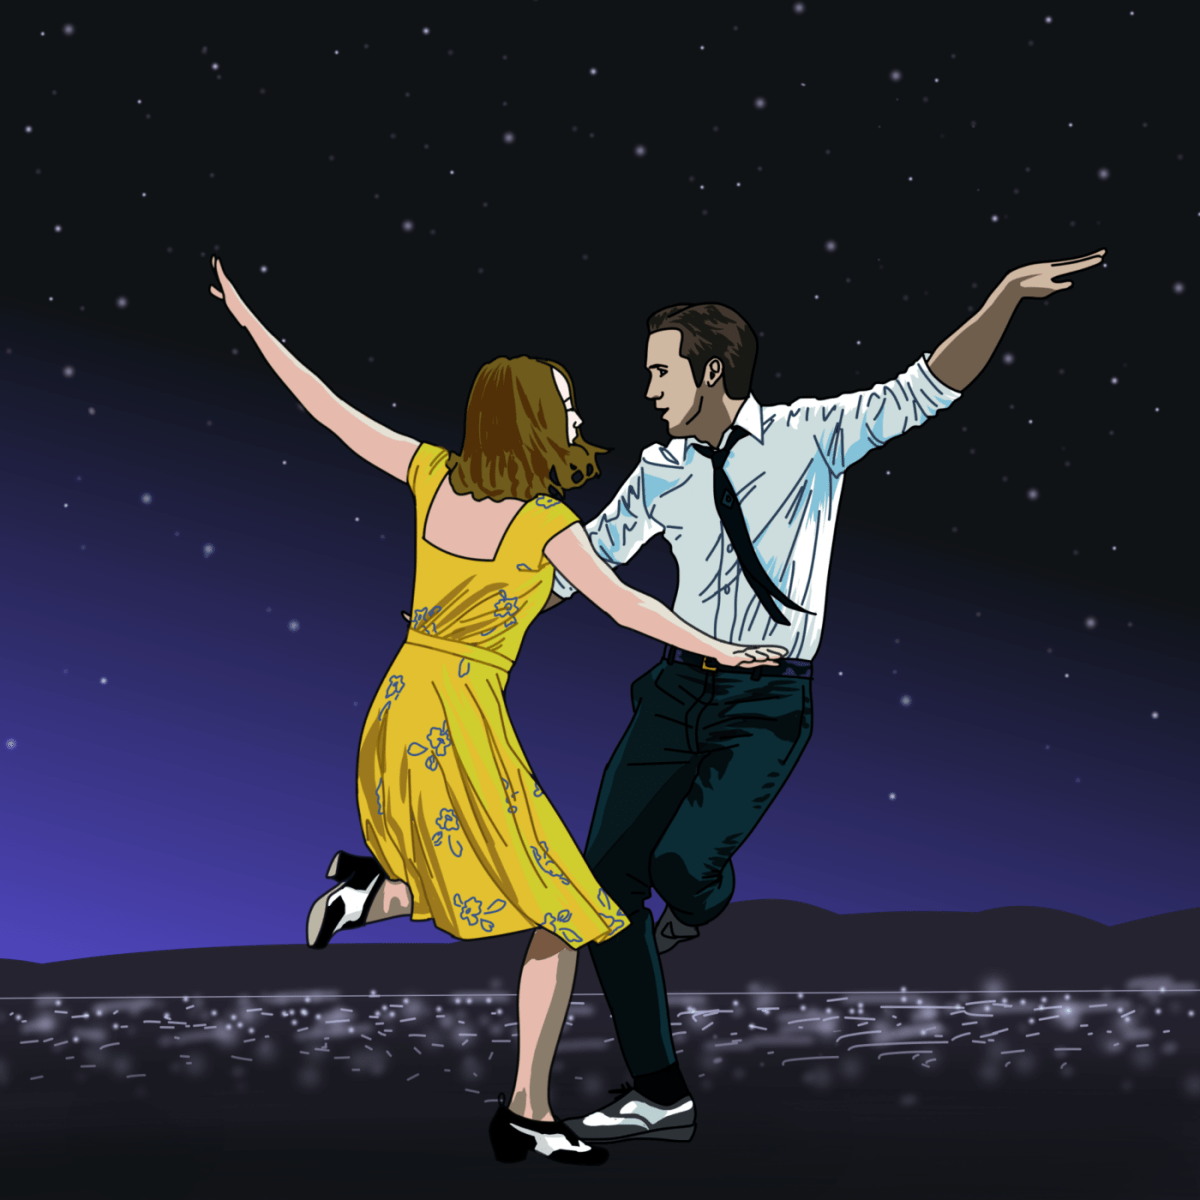 La La Land: A perfectly executed magic trick